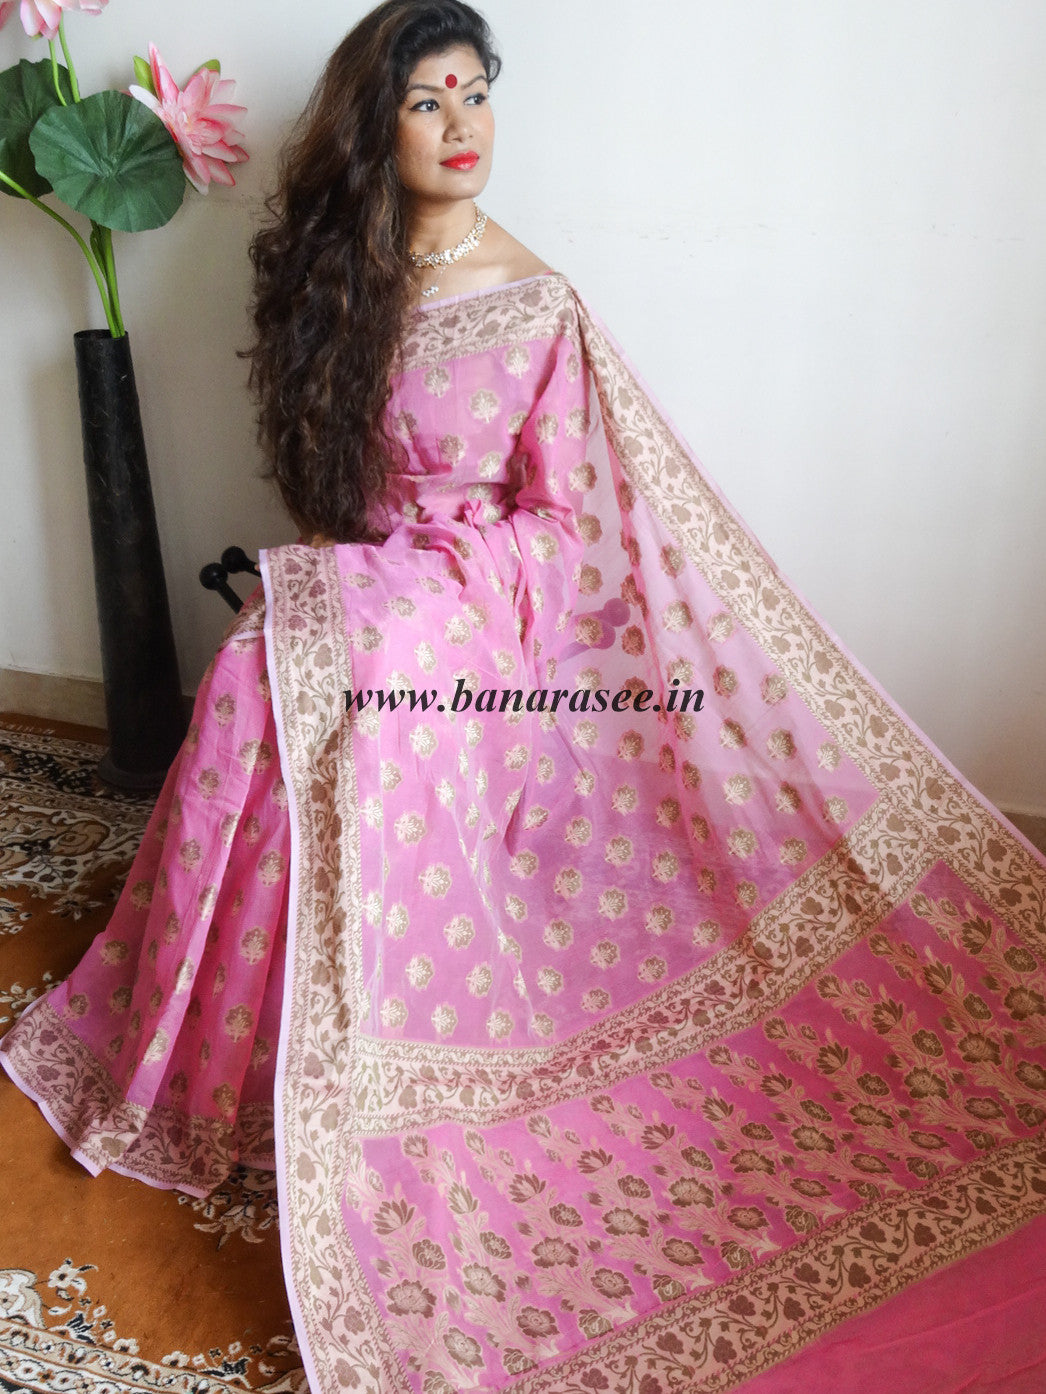 Banarasee/Banarasi Cotton Silk Mix Saree With Floral Weaving Design-Pink